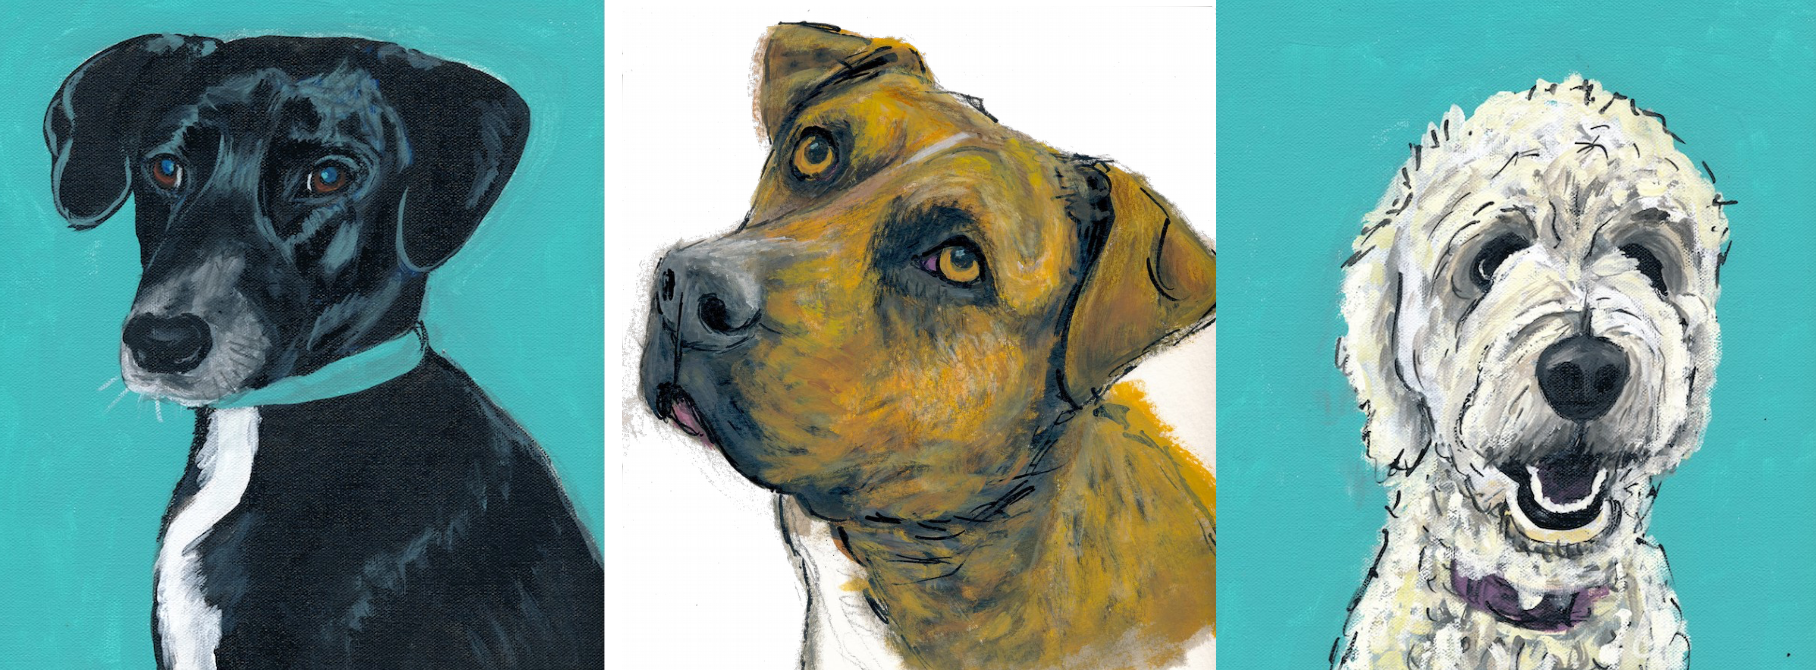 Pet portrait commissions of Bella, Rufus, and Toby by Ink Original art.